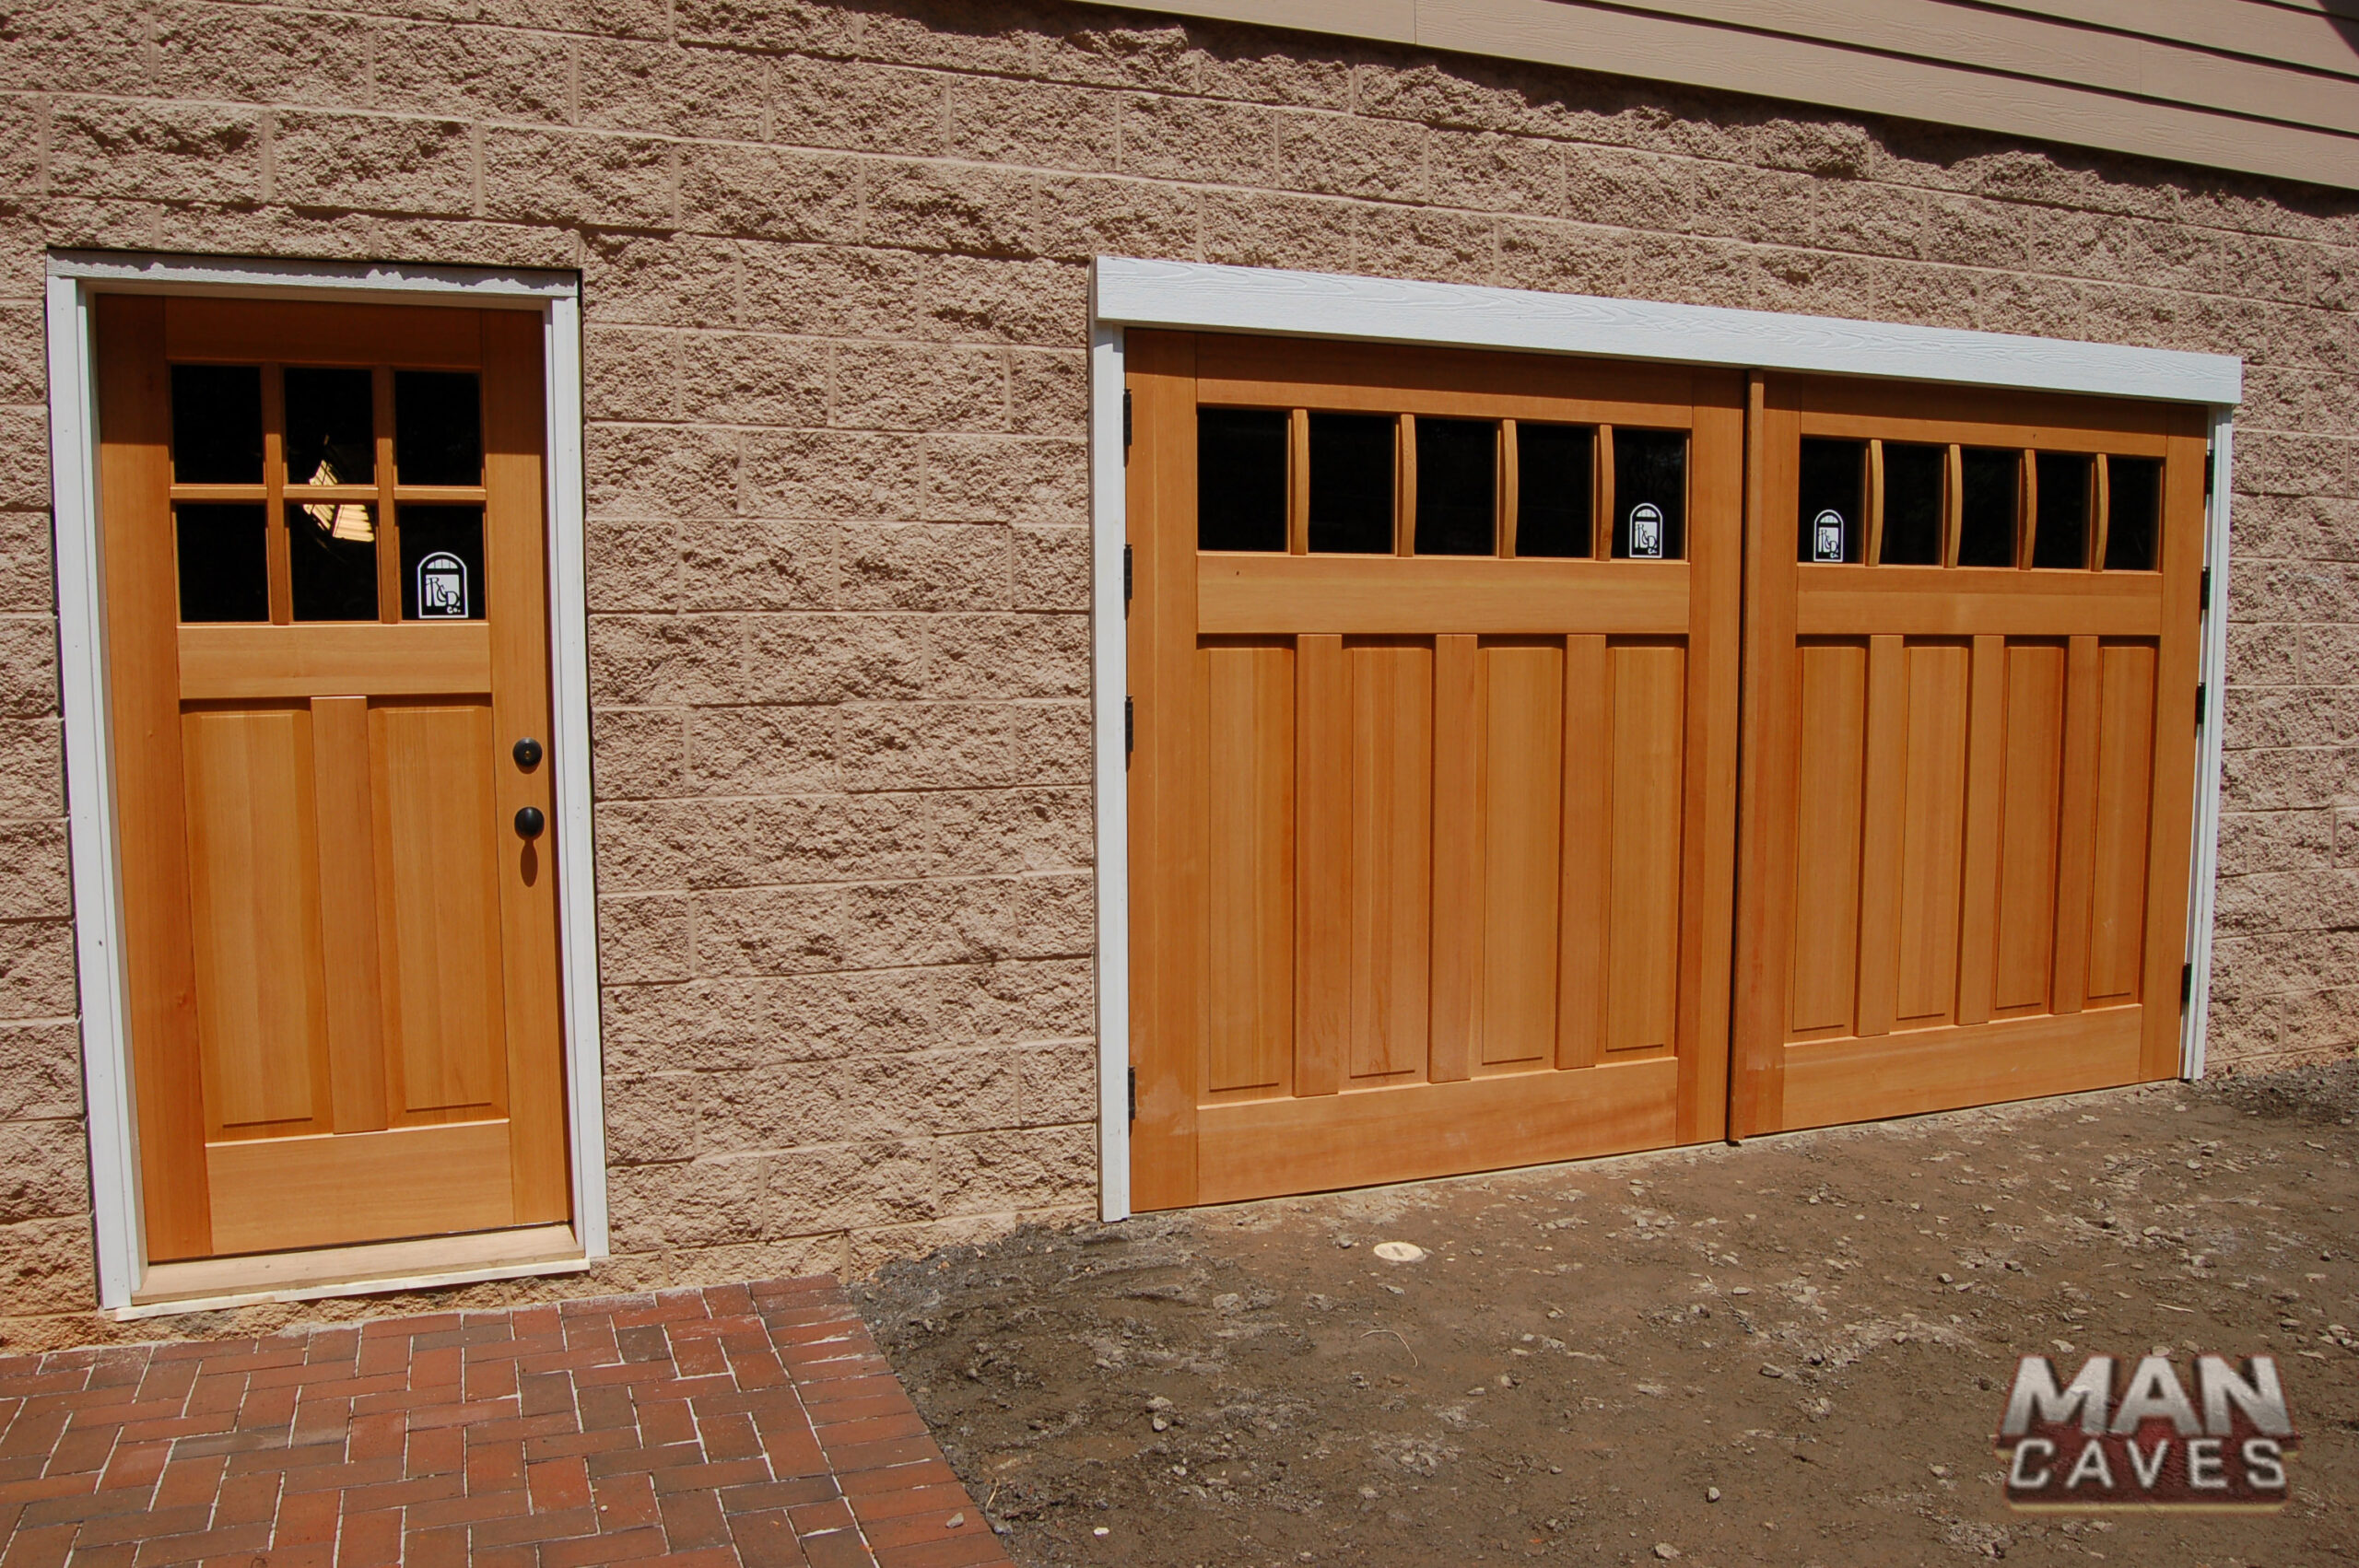 43. Custom Design – Square top, (1x5) lites w/ curved mullions (ext), (4) vertical raised panels, Vertical grain Douglas Fir, butt hinges, and Franklin Auto-swing openers & ECTL05 Design – Square top entry door, (2x3) lites w/ curved mullions (ext), (2) vertical raised panels, Vertical grain Douglas Fir, and butt hinges; Charlotte, N.C. Featured on 'Man Caves'